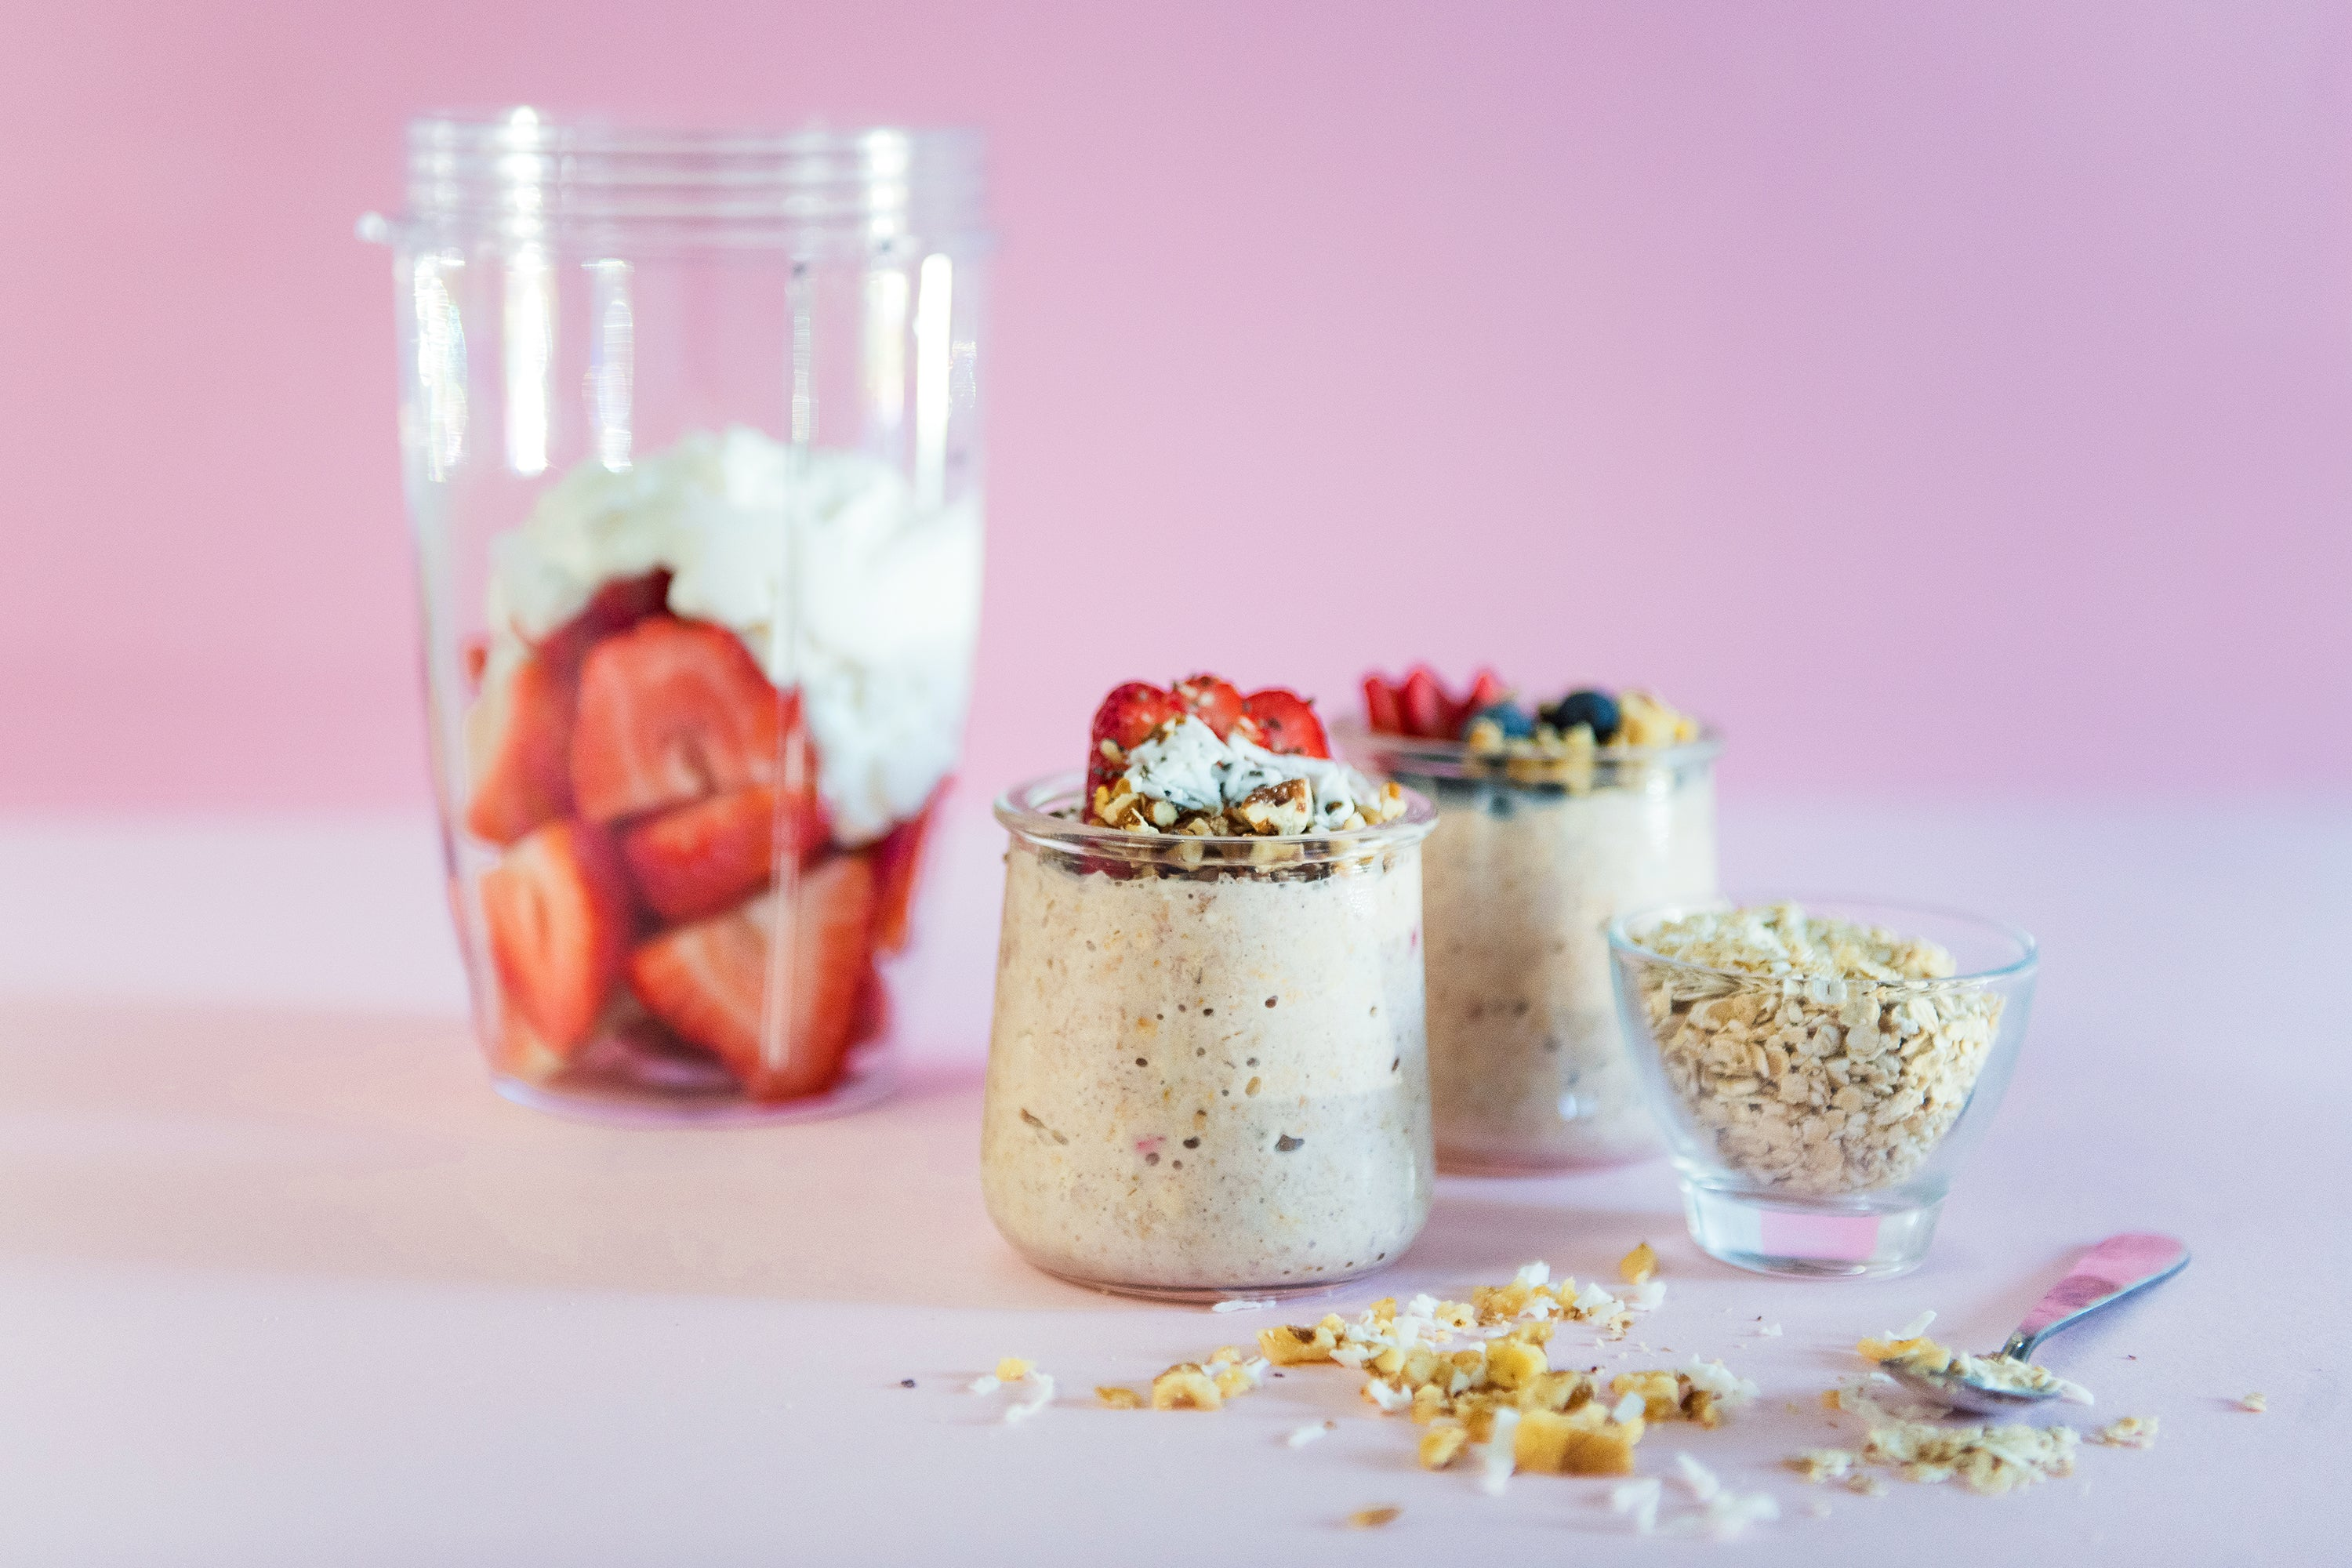 Large Batch of Overnight Oats